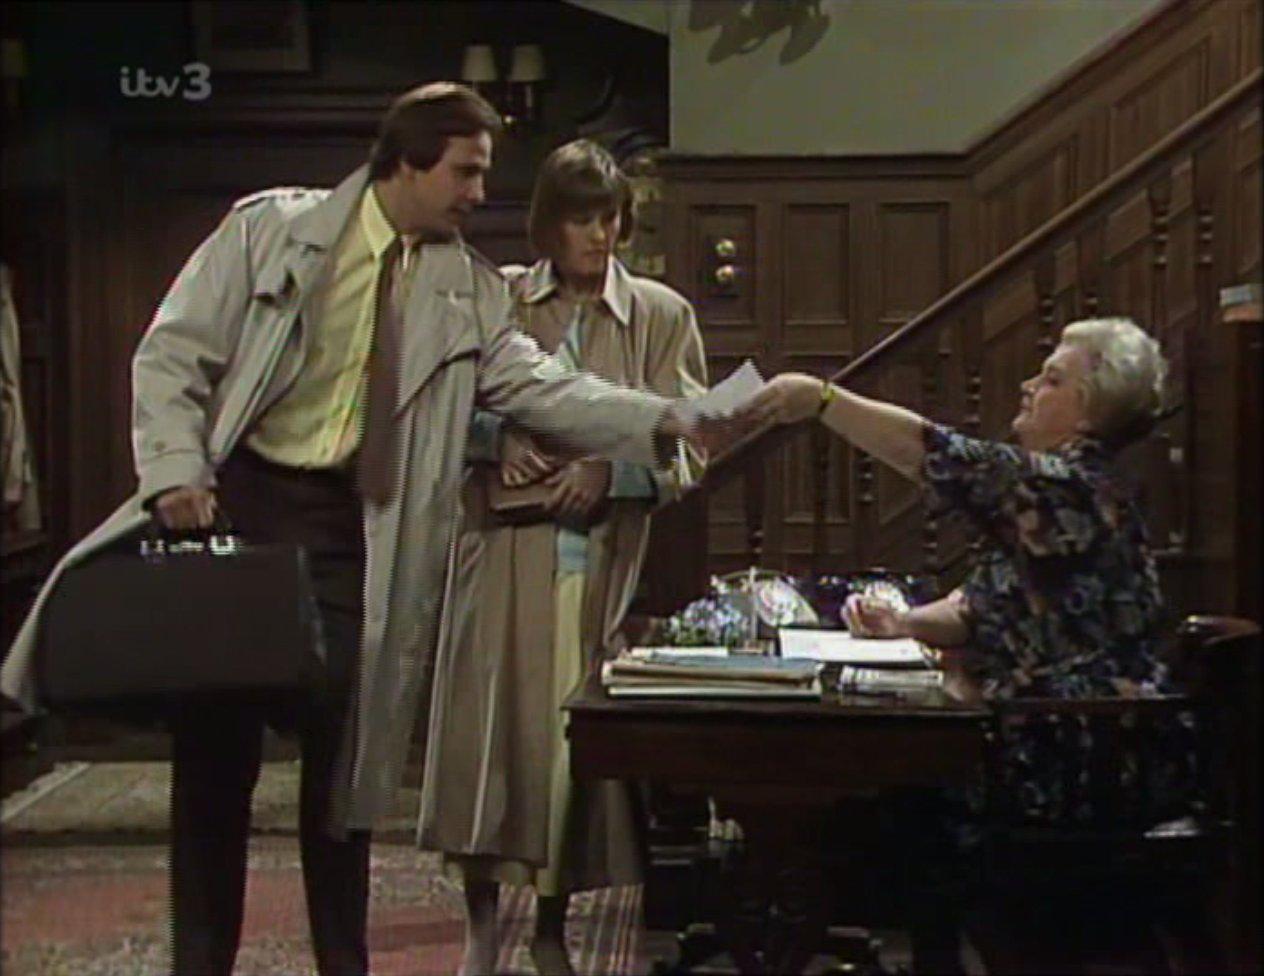 Christopher Blake, Jennifer Lonsdale, and Mollie Sugden in That's My Boy (1981)